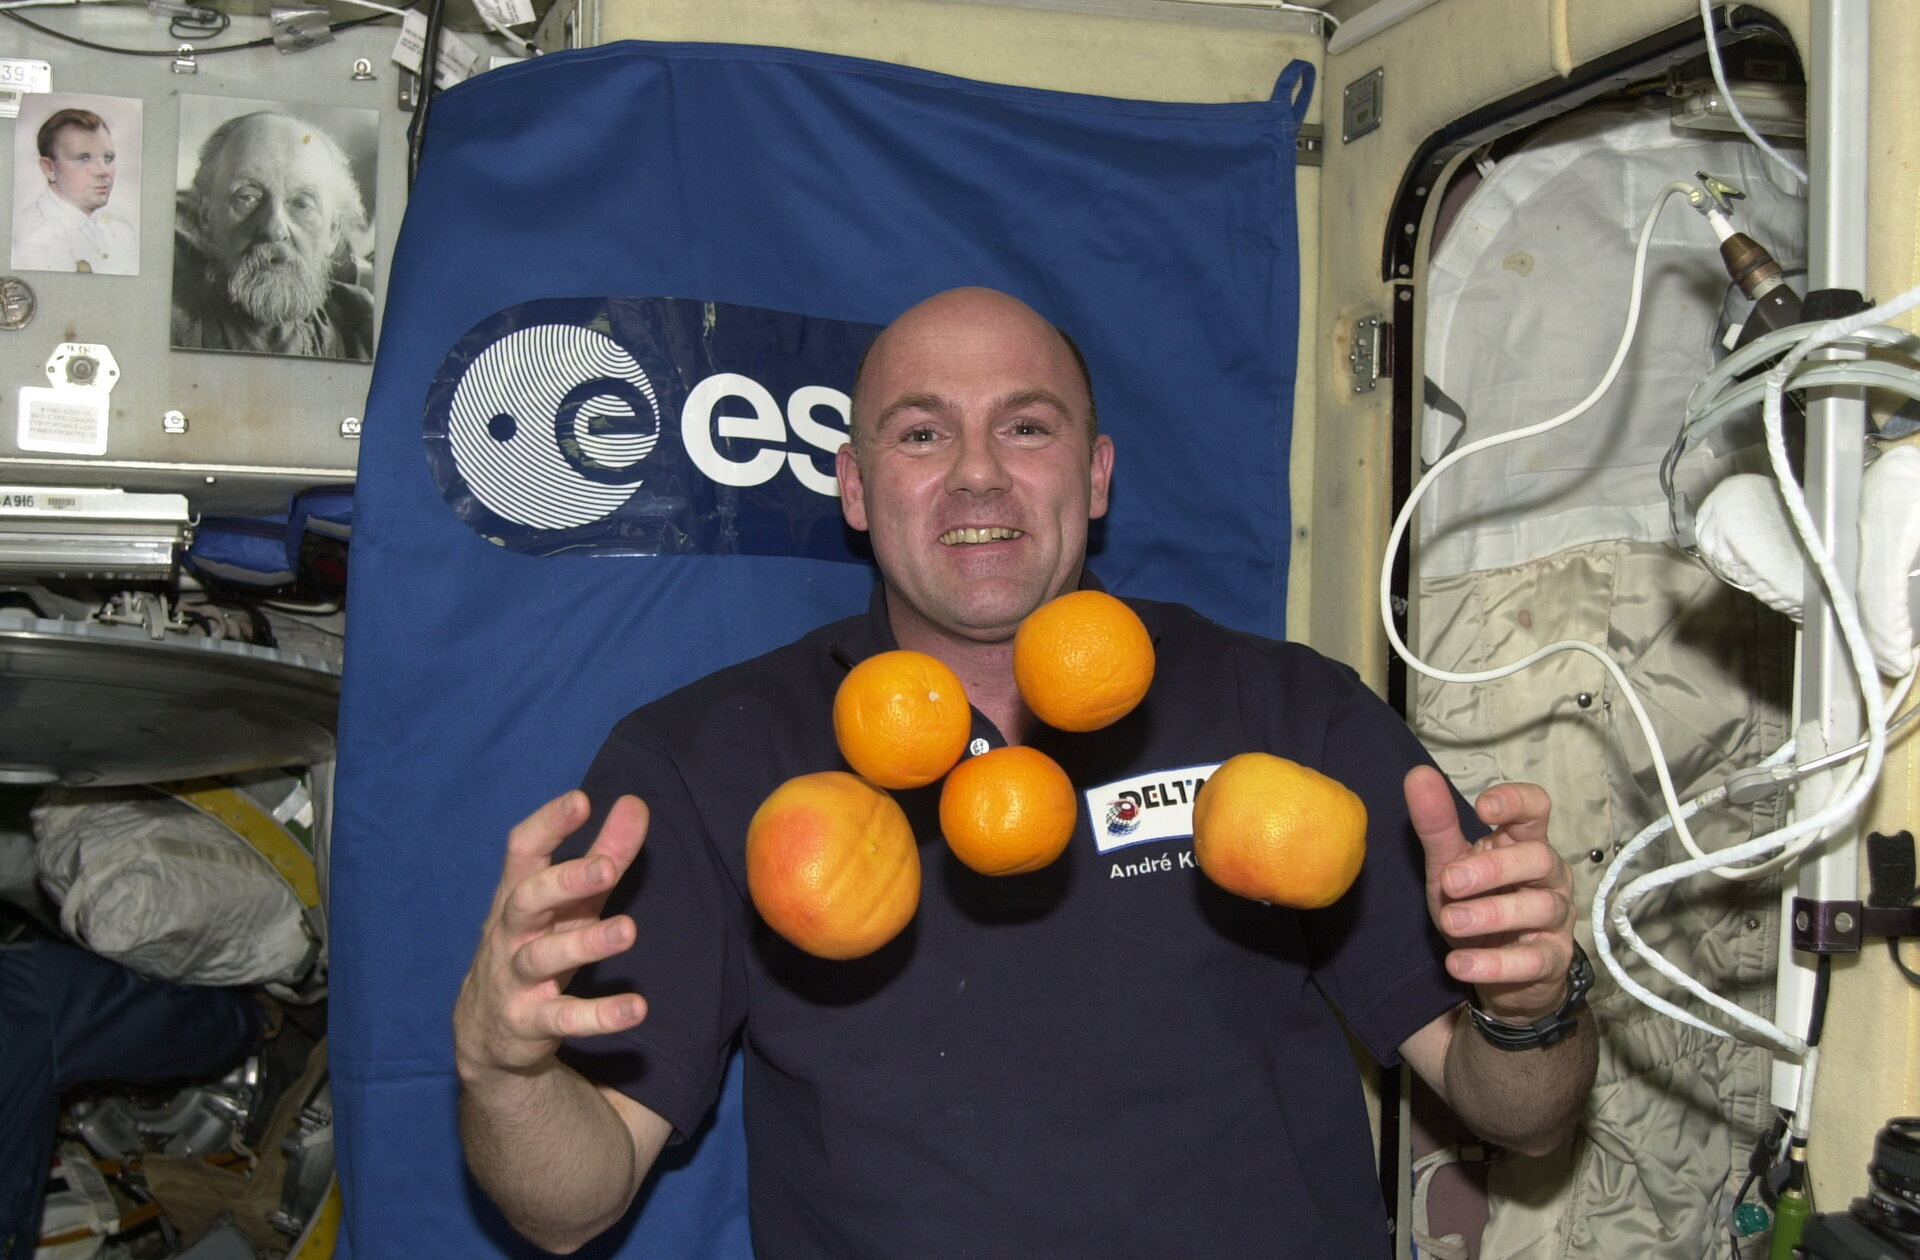 André during the Delta Mission to ISS in 2004